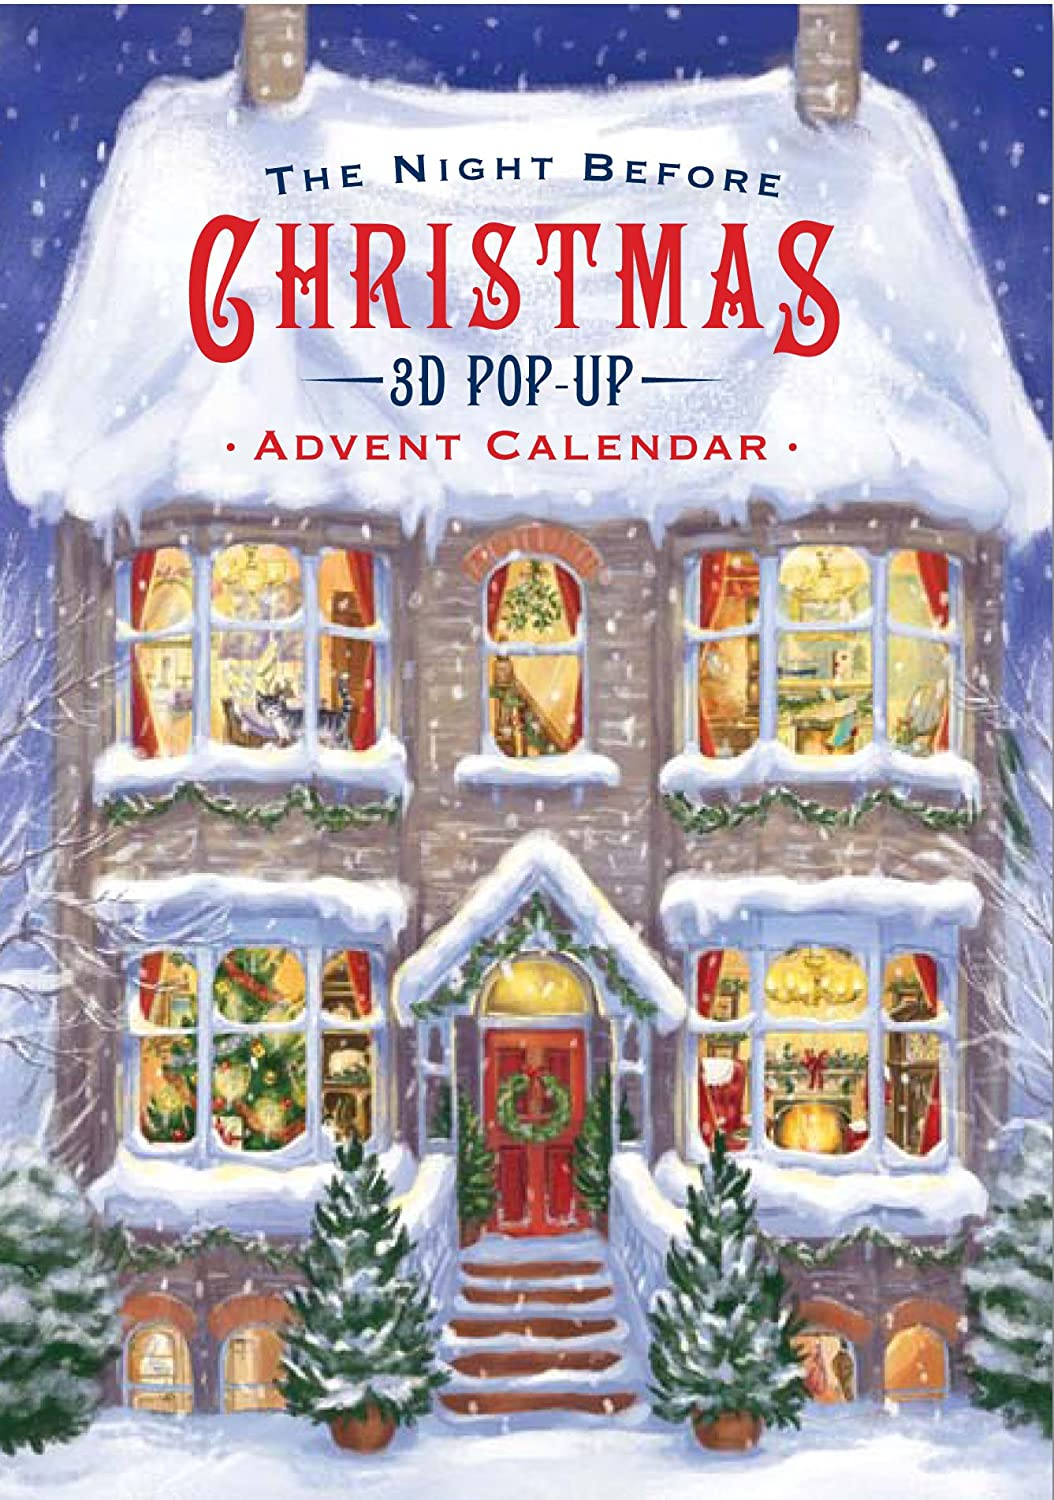 Christmas 3-D Advent Calendar - The Night Before Xmas - 24 Hidden Doors and Surprises for The Countdown to Christmas